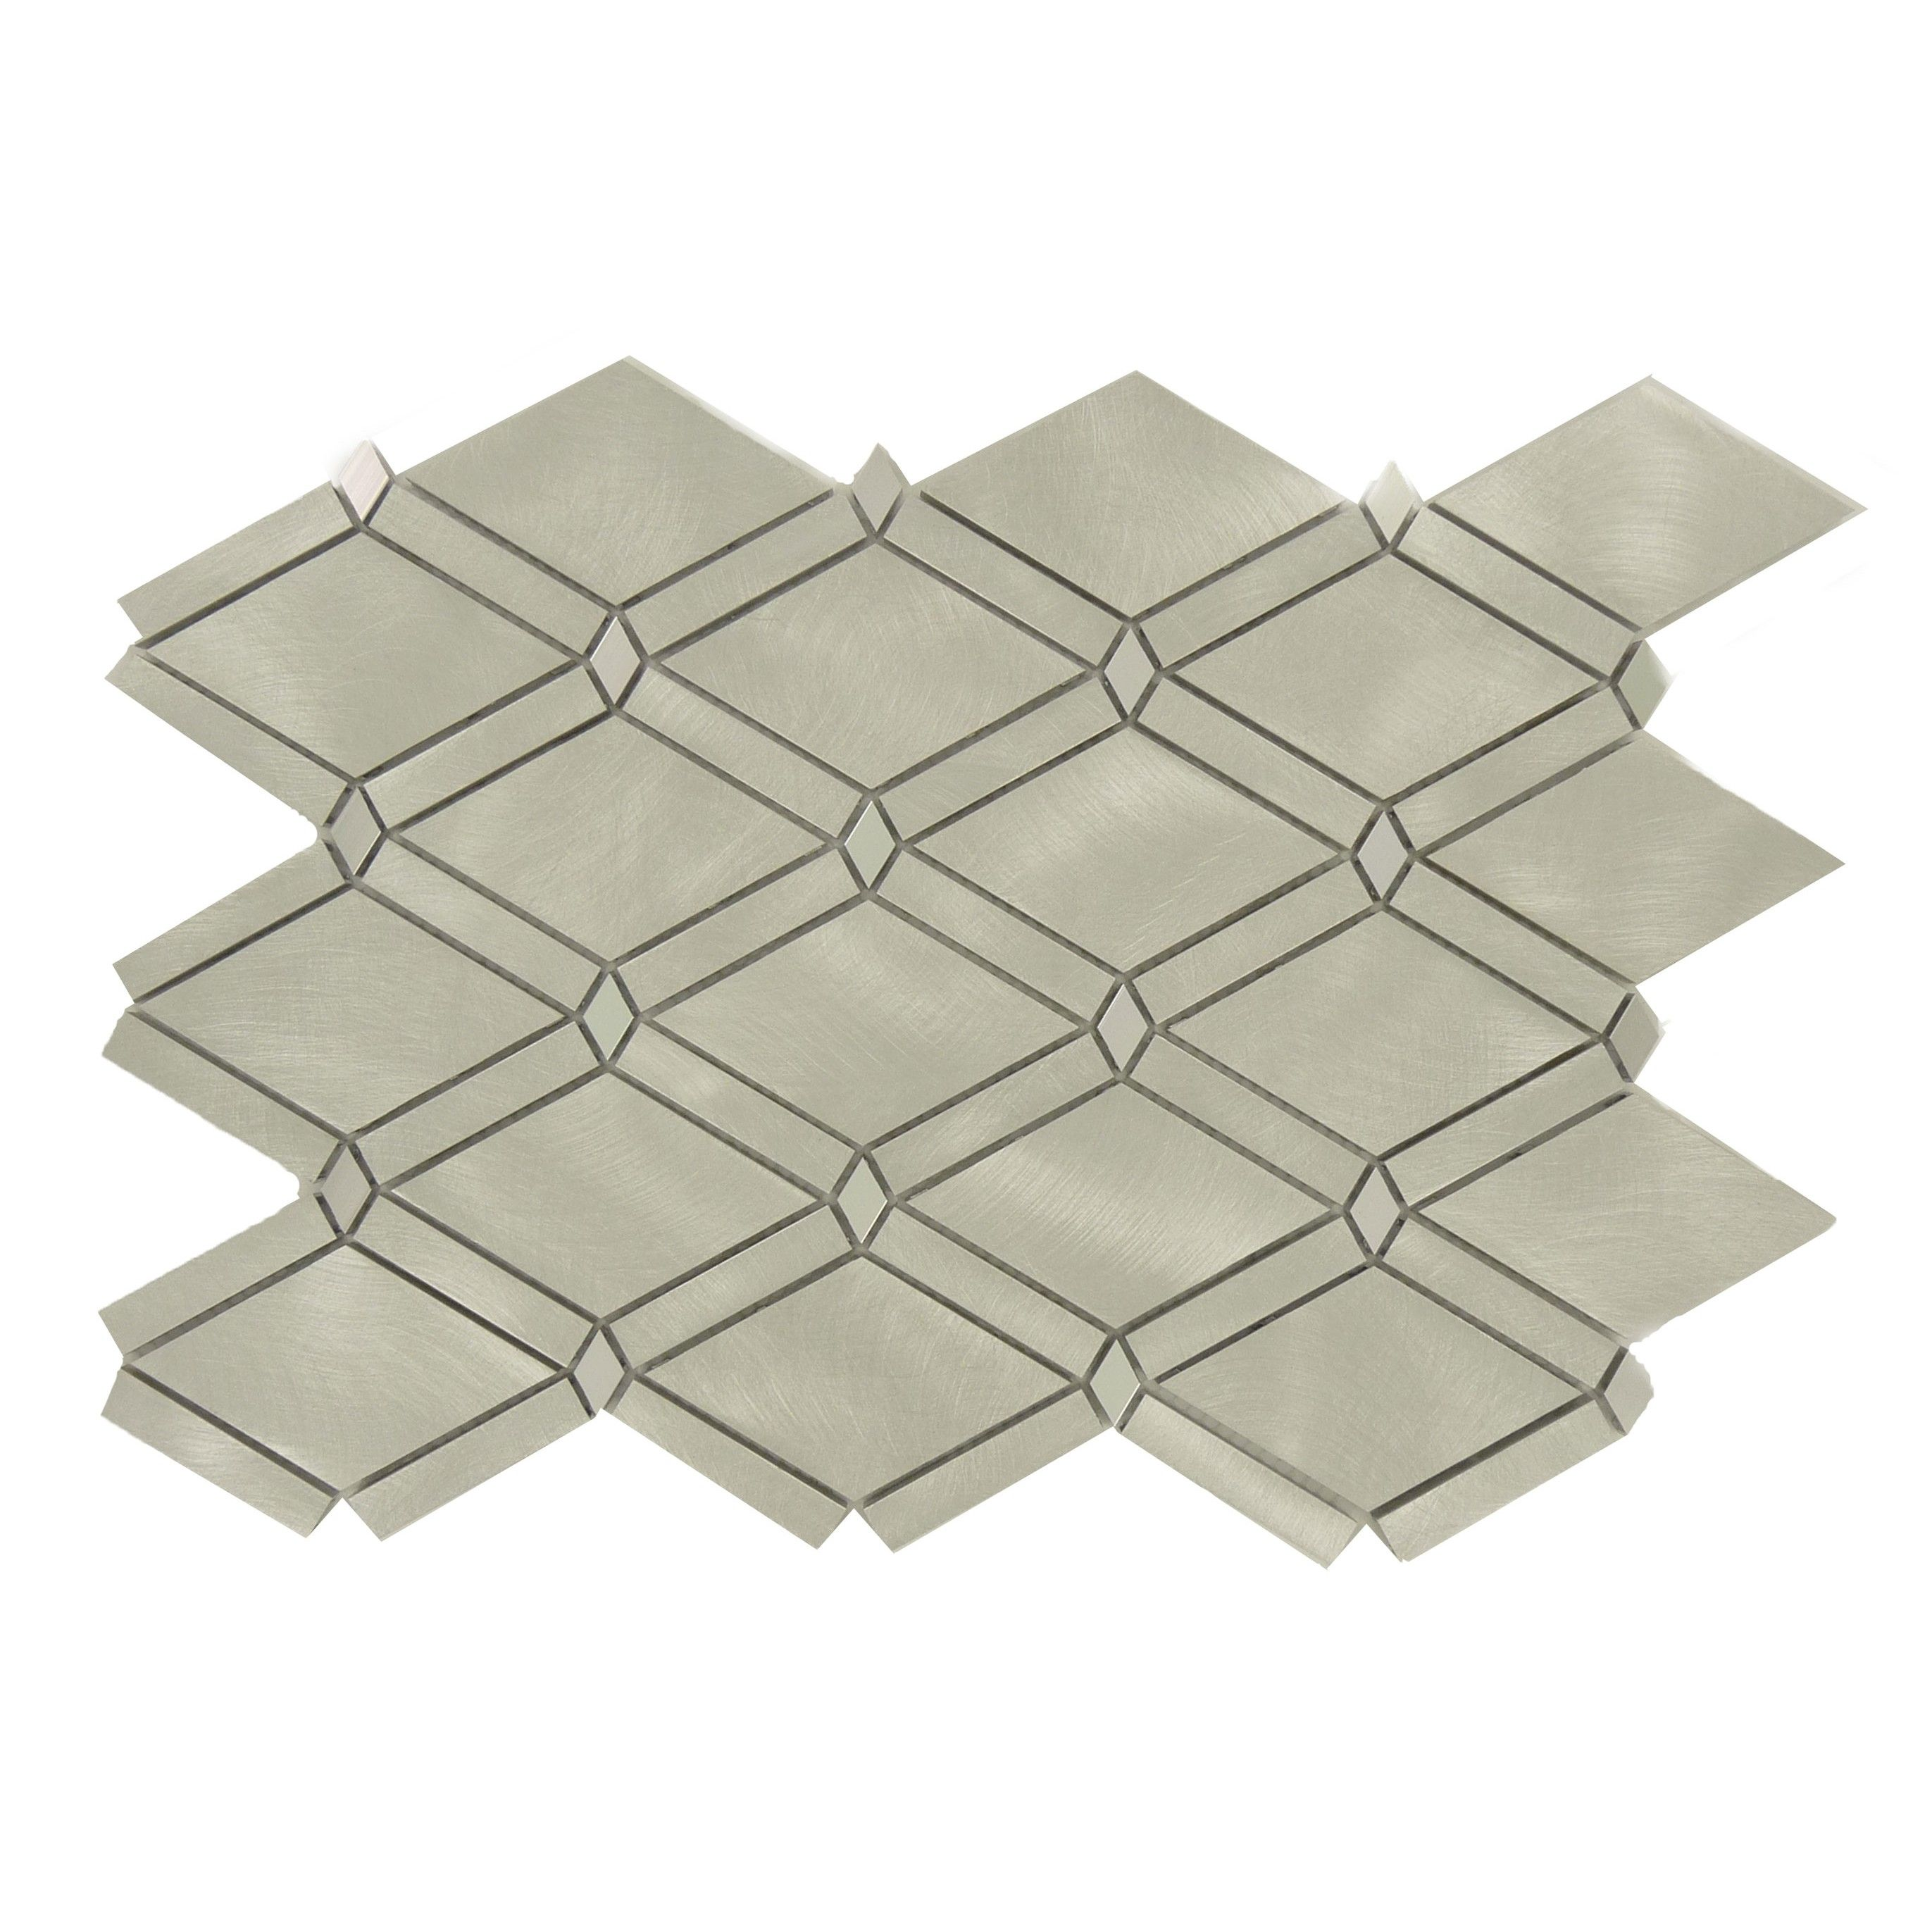 Sheet Size 10 1 2 X 15 1 2 Tile Size 2 1 8 X 3 3 8 Tile Thickness 1 4 Nominal Grout Joints 1 8 Sheet Mount Mesh Backed Mosaics Metal